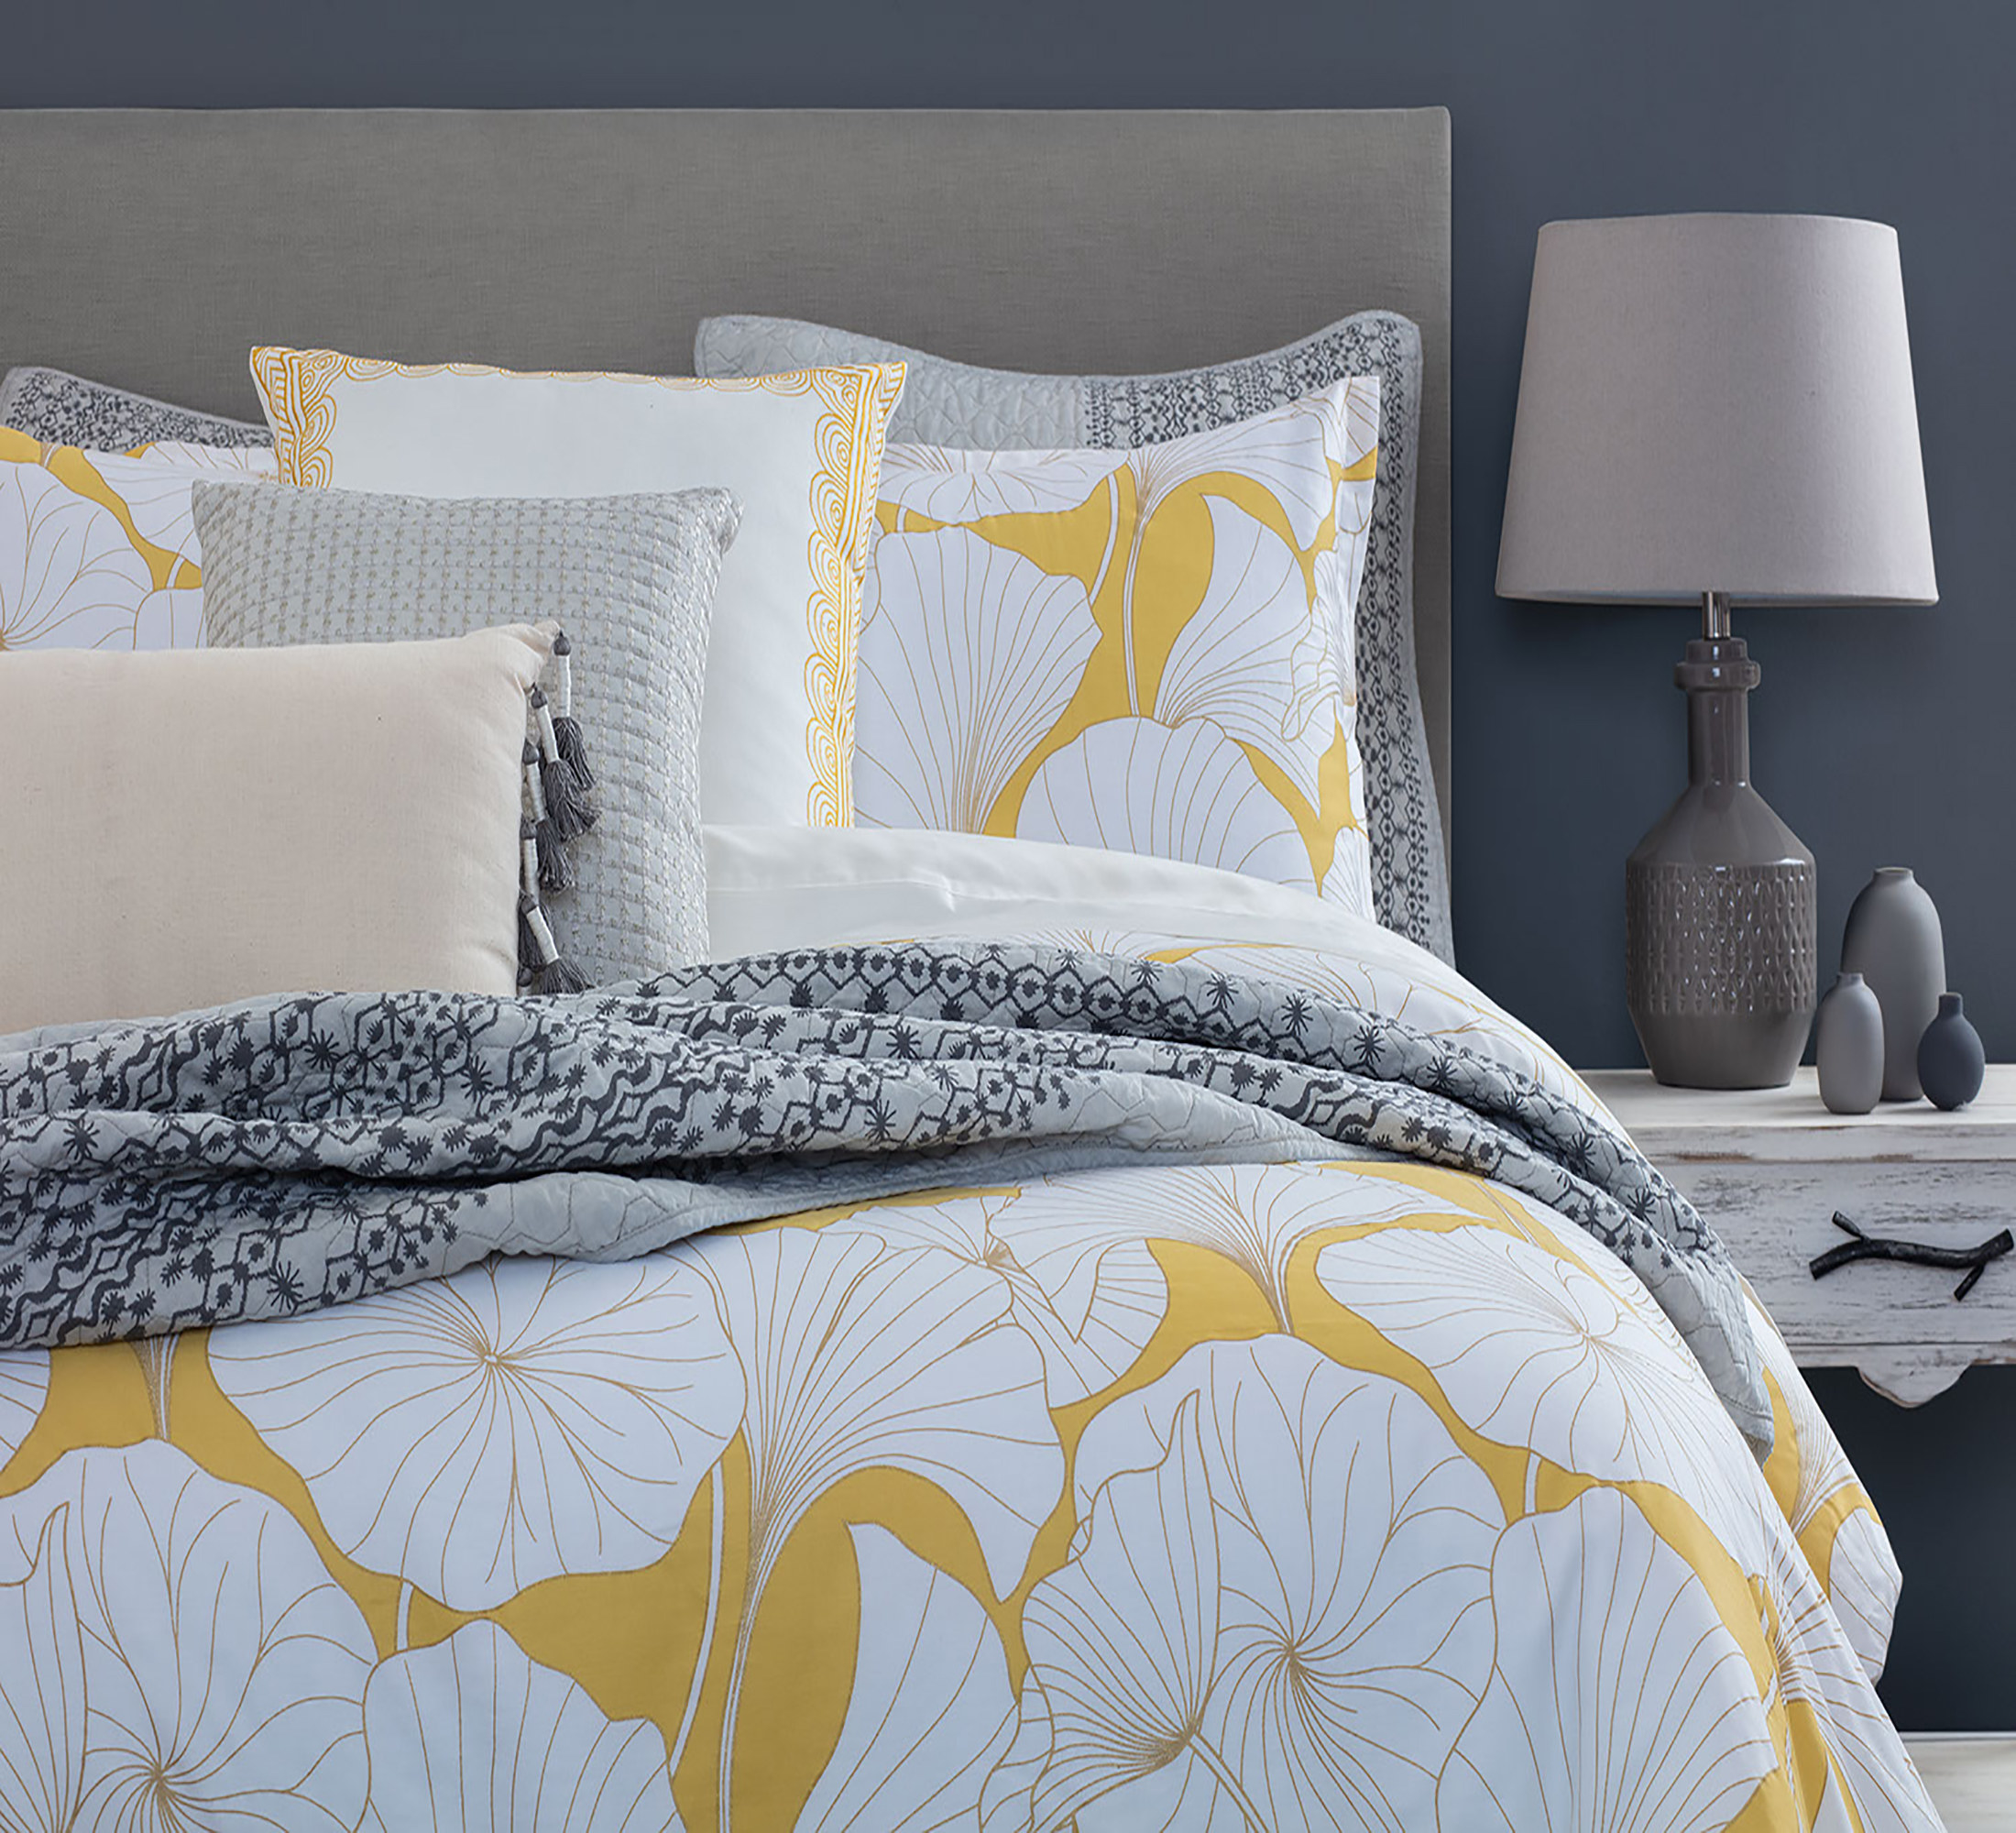 A yellow comforter and shams with a white flower pattern